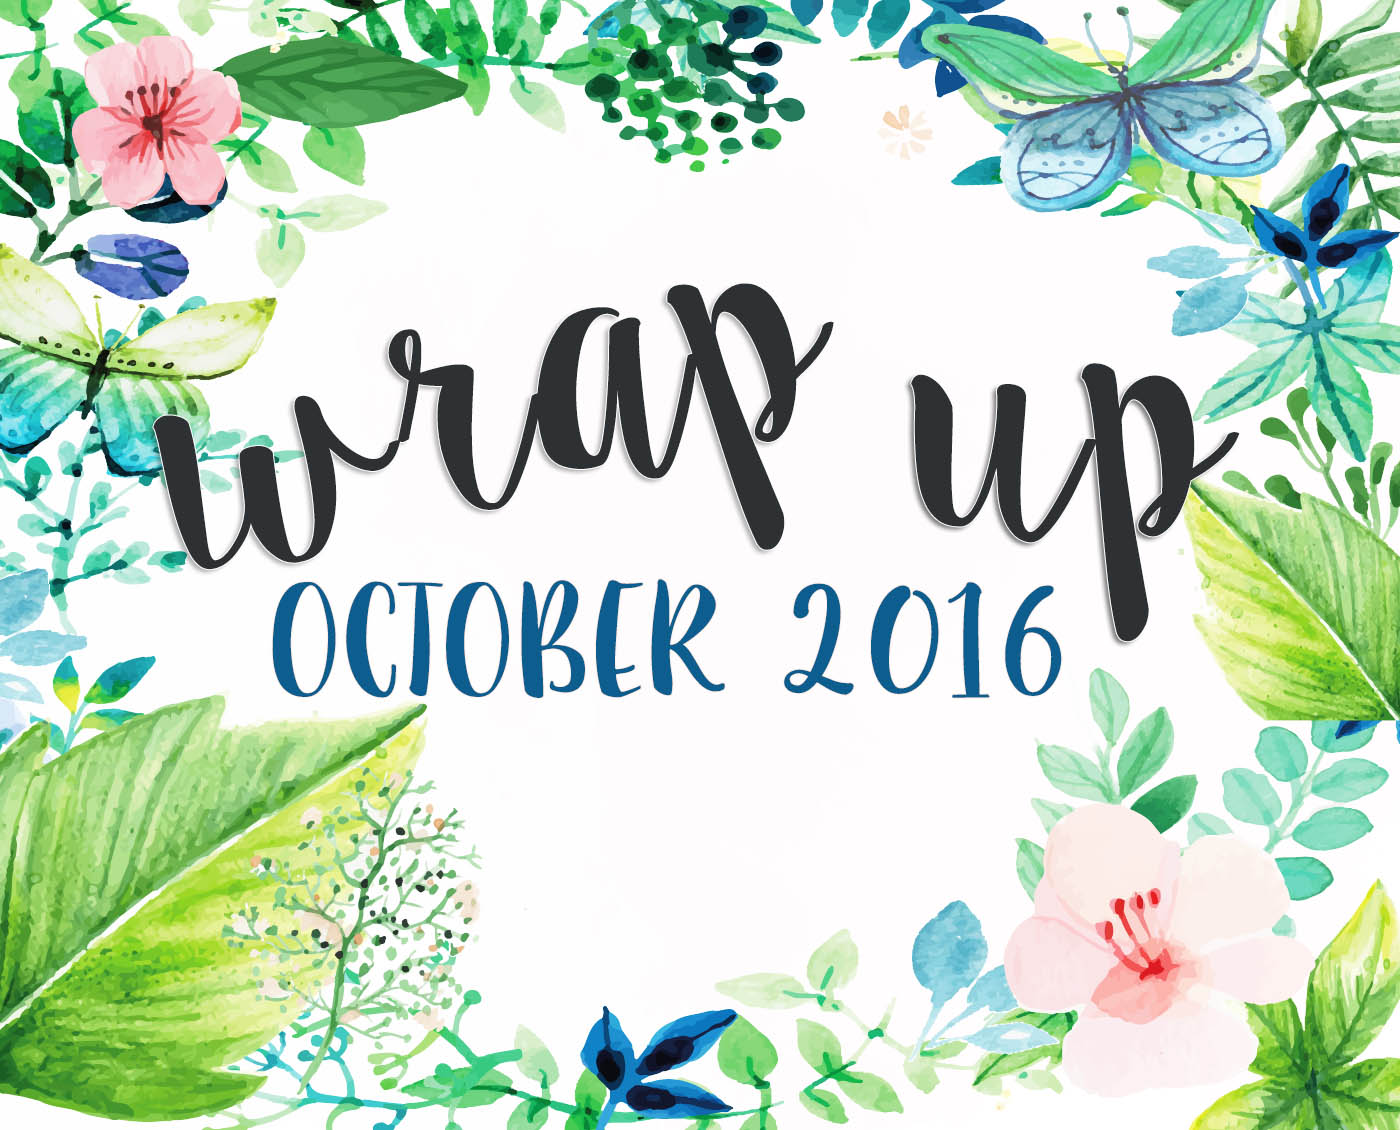 Wrap up october 2016